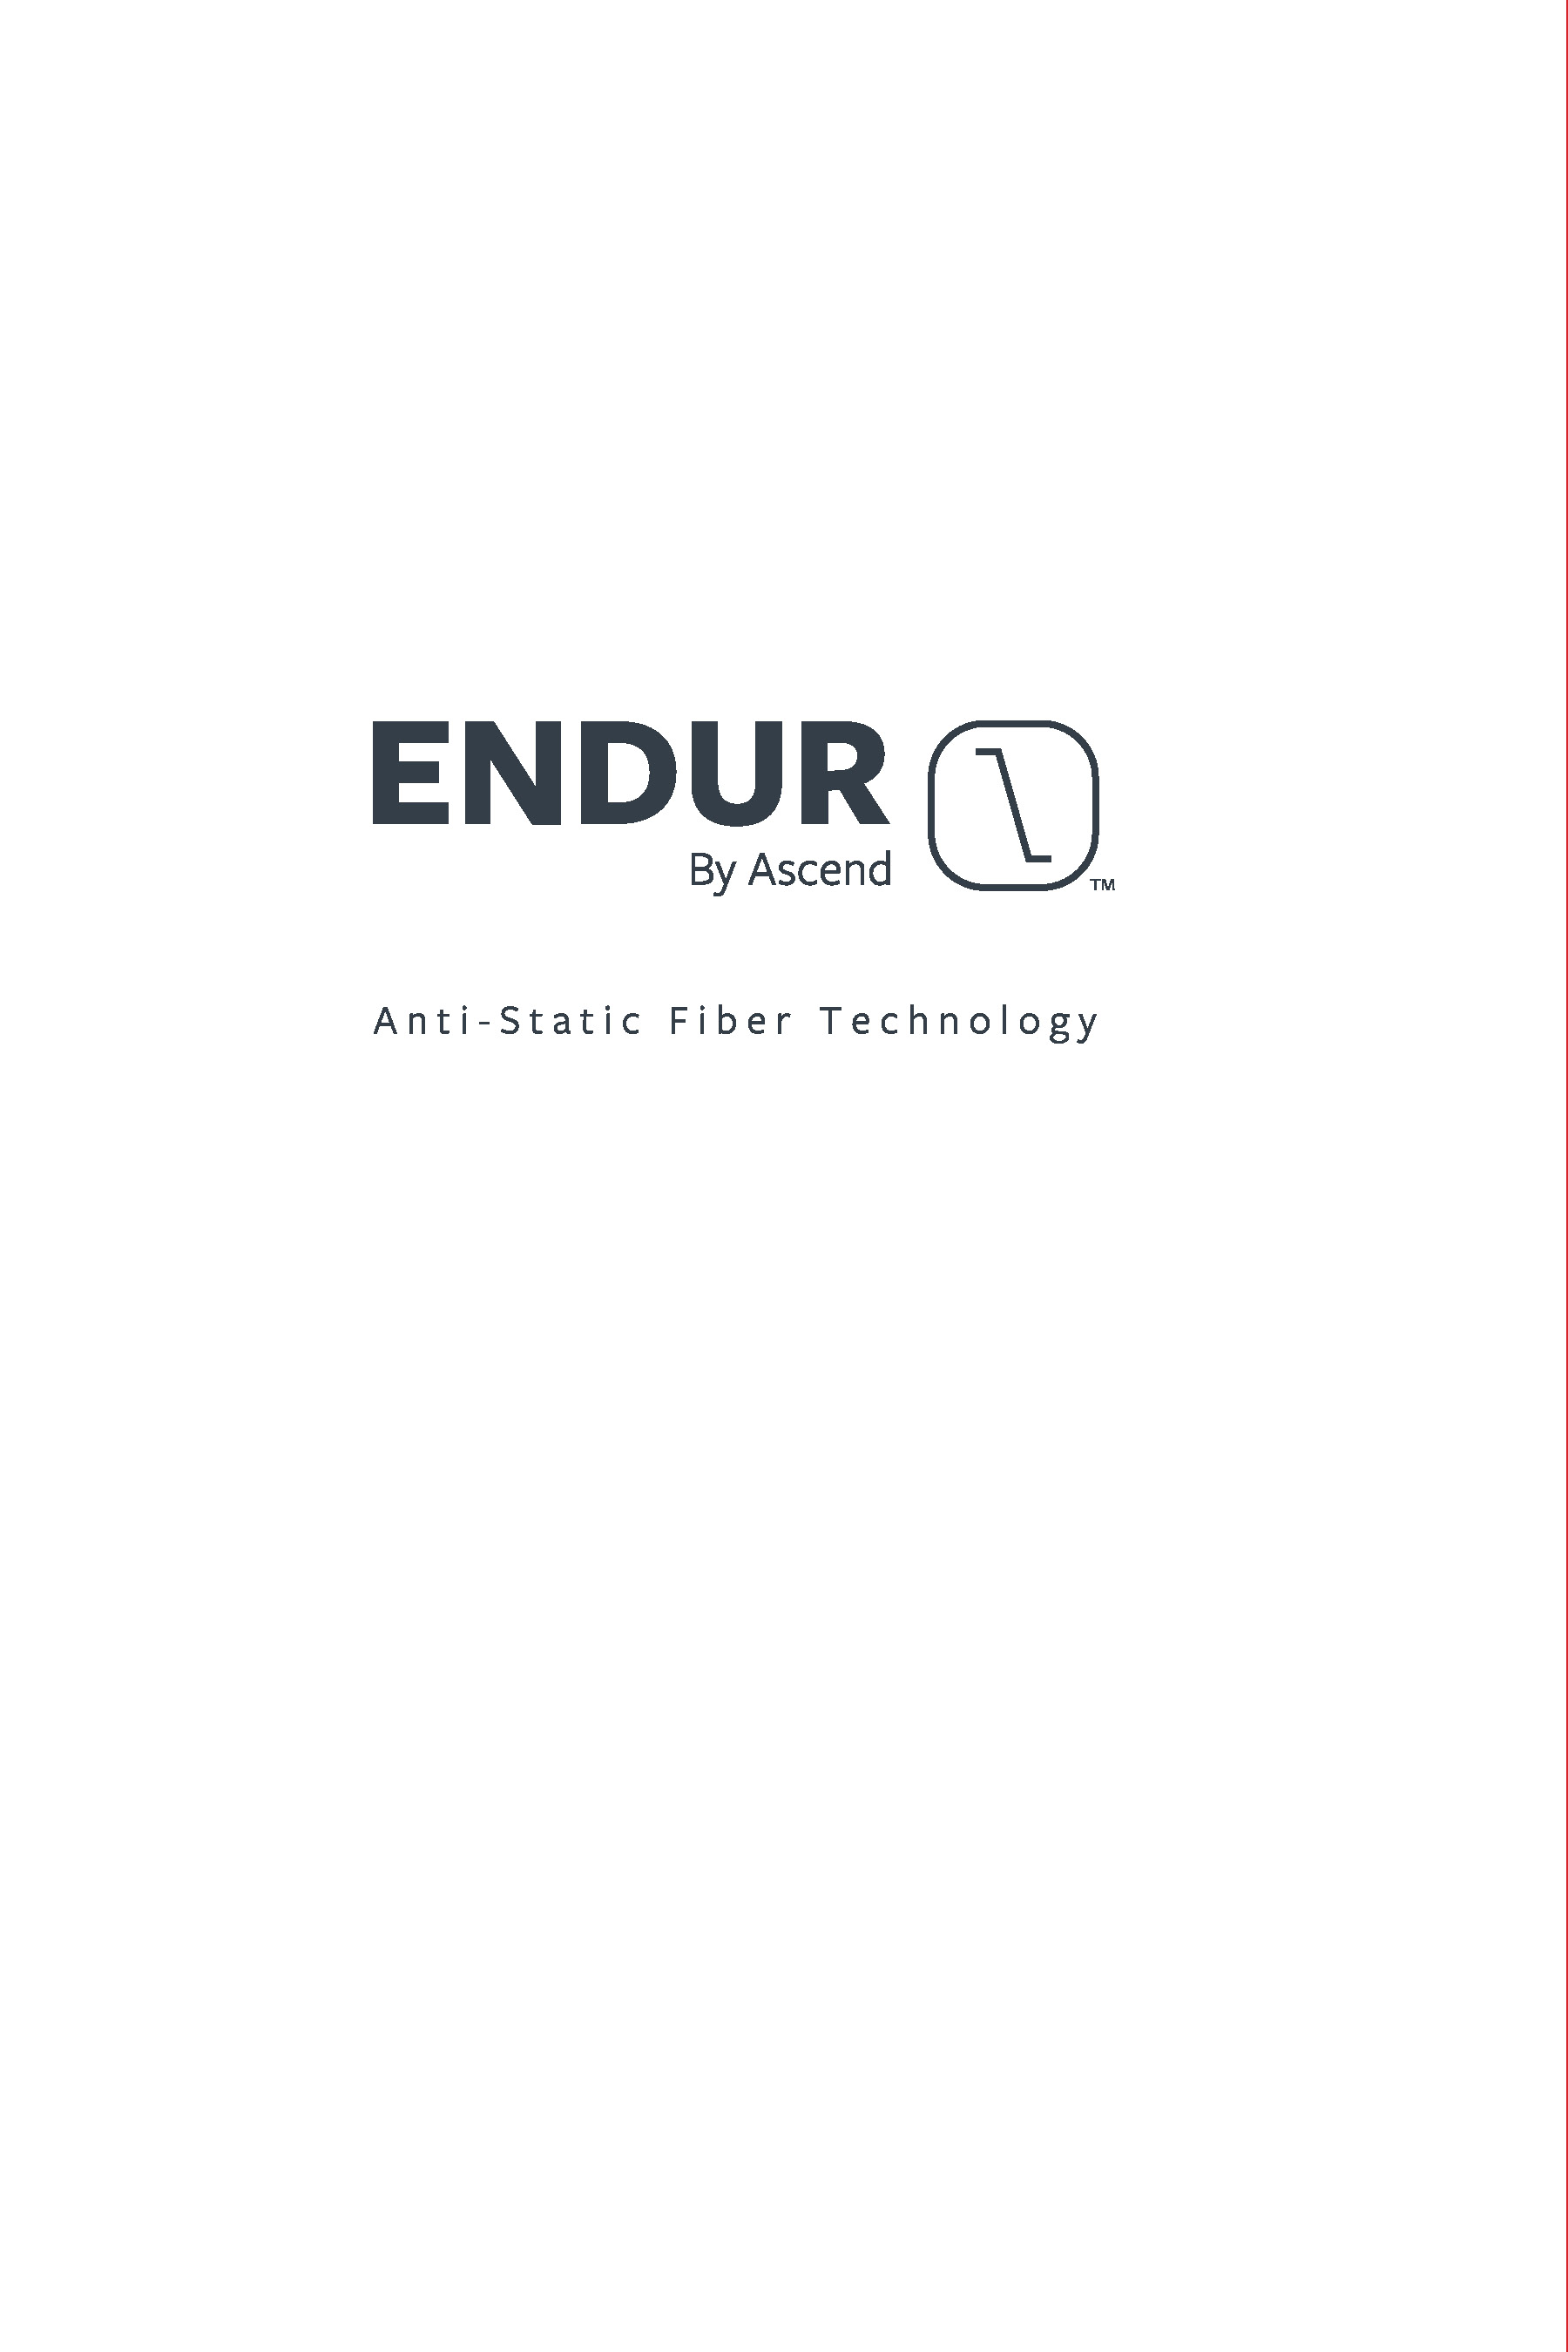 ENDUR by Ascend®